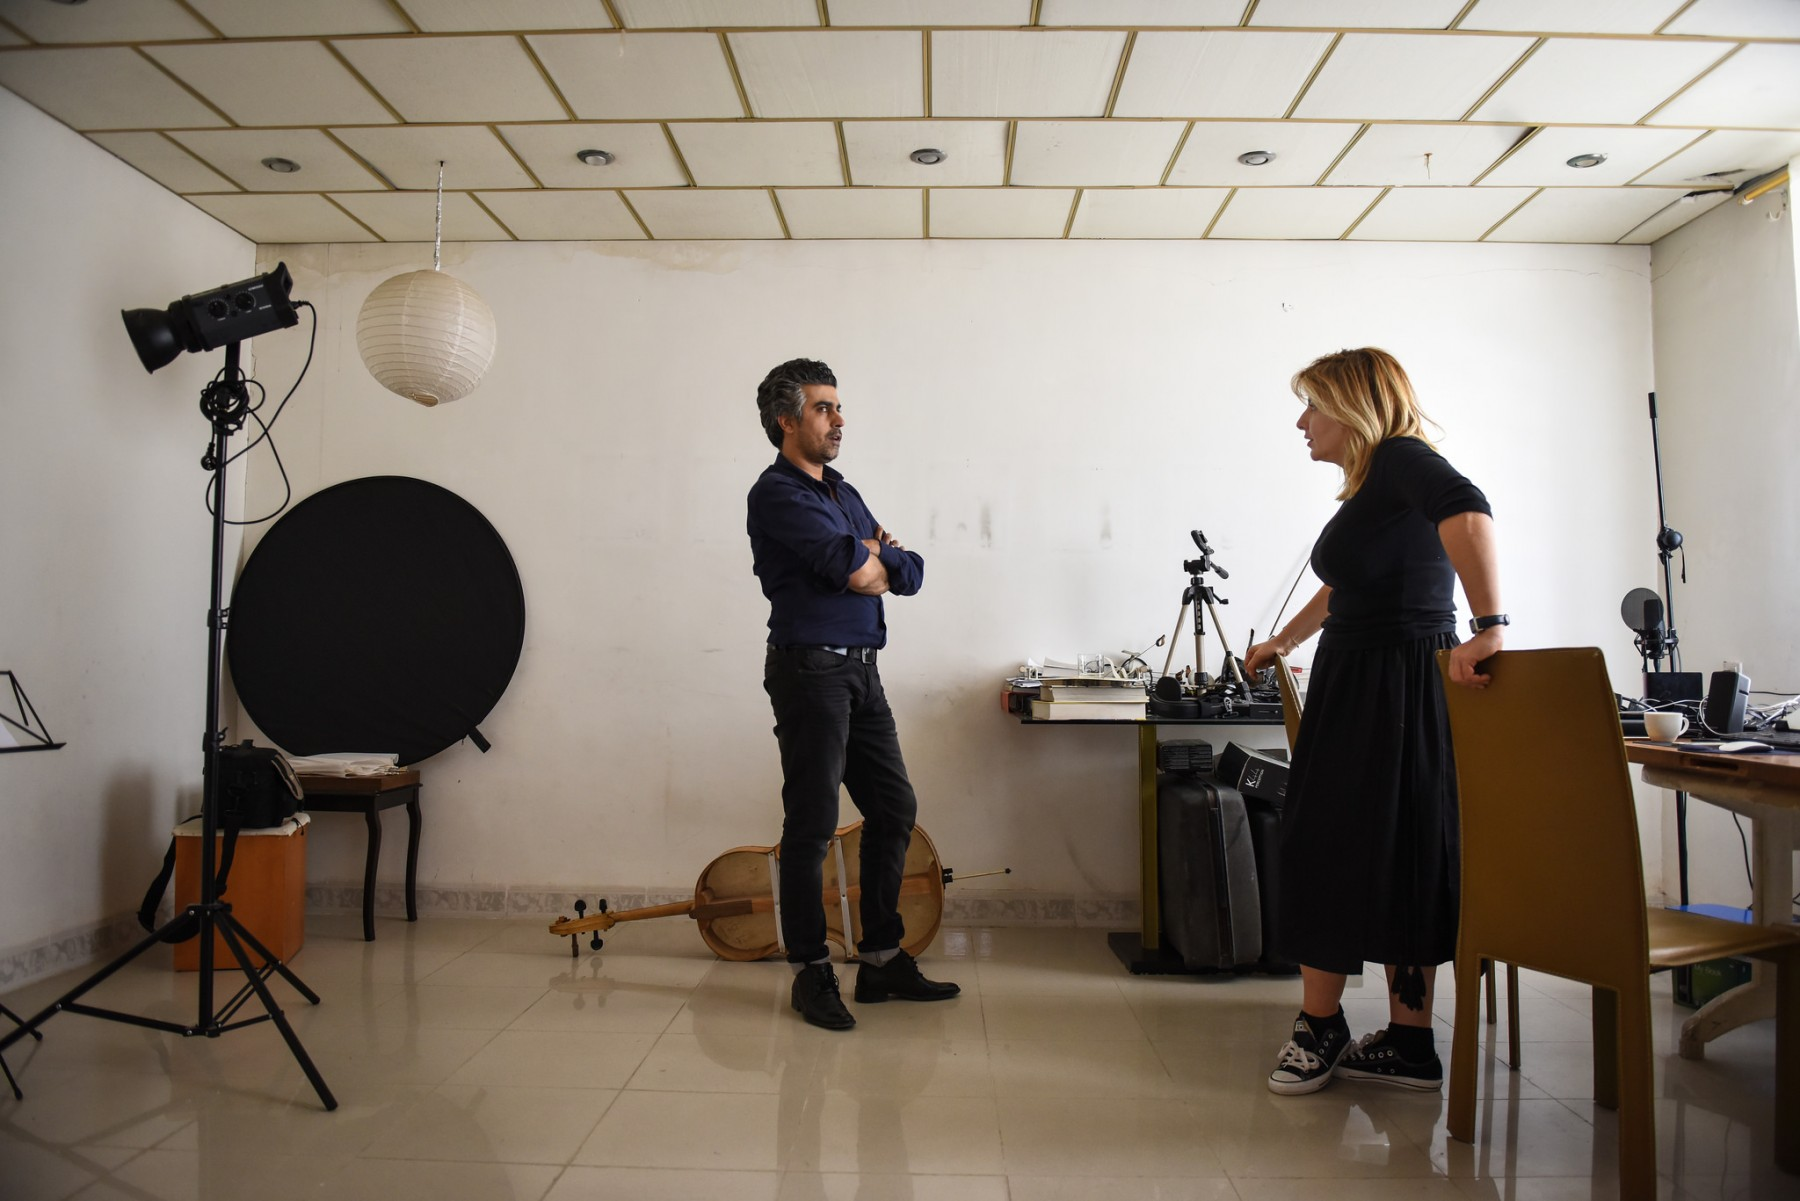 Sherko Abbas and Tamara Chalabi in the artist's studio. Photo: Ruya Foundation